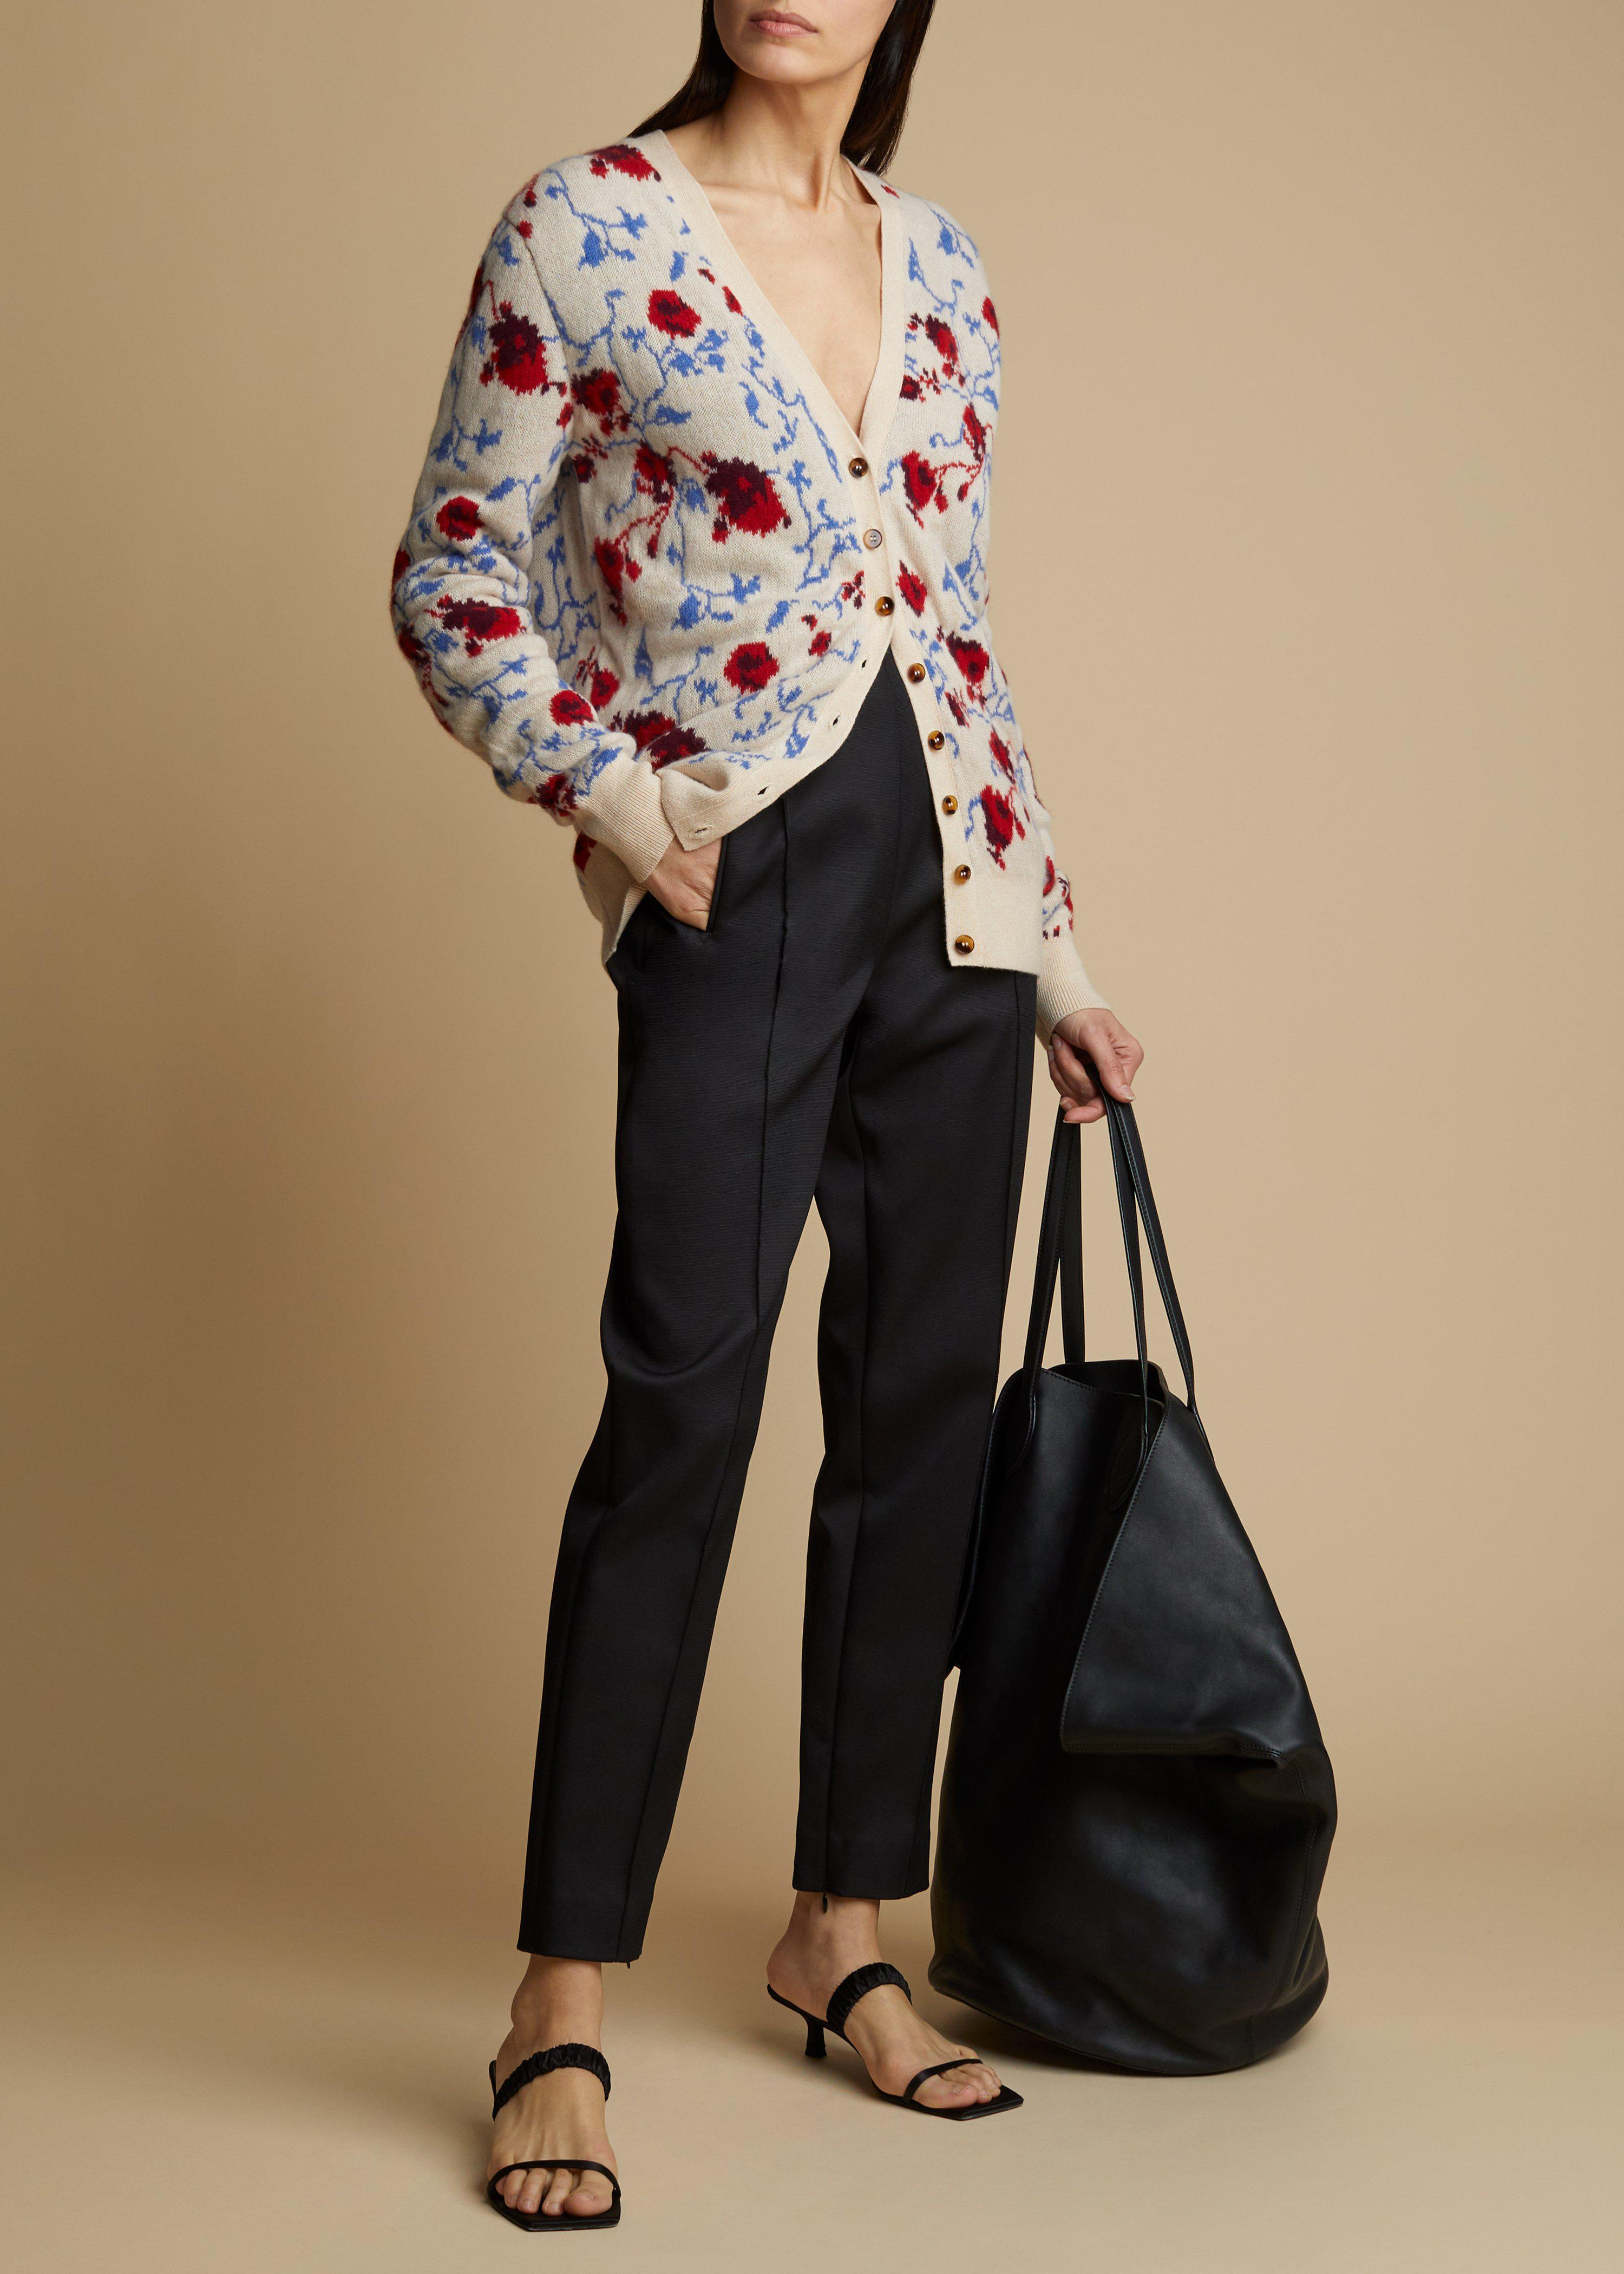 The Amelia Cardigan in Floral Jacquard 1